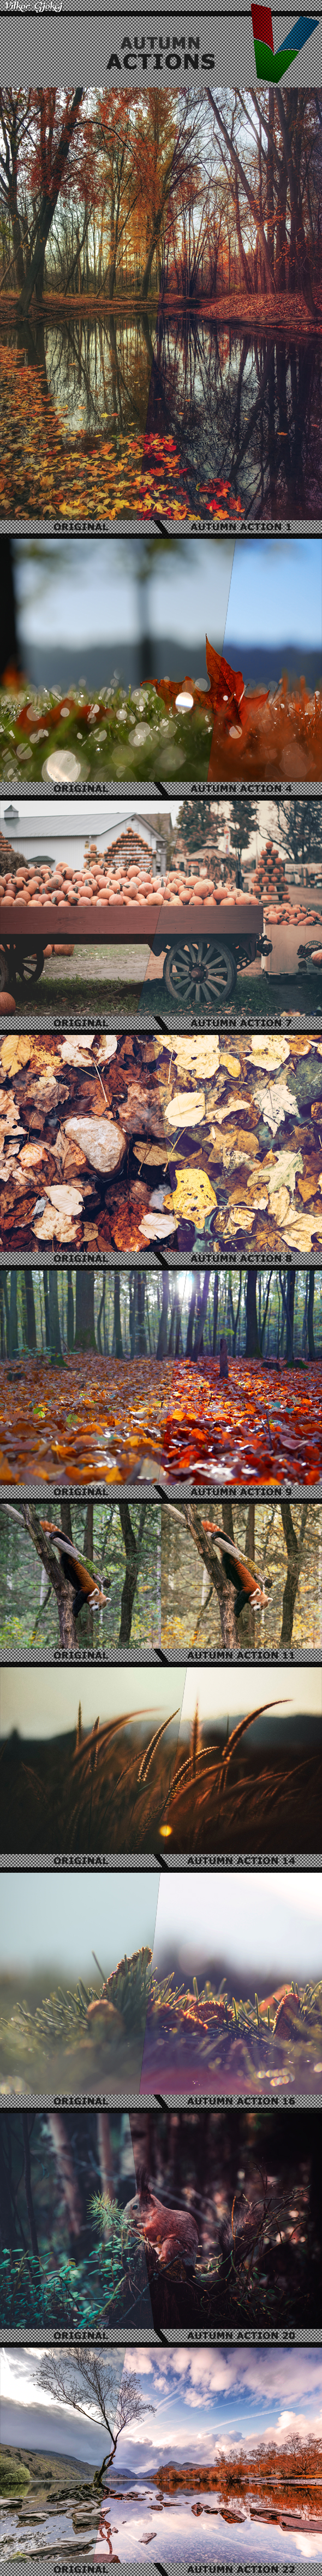 GraphicRiver Autumn Actions 1 20756302